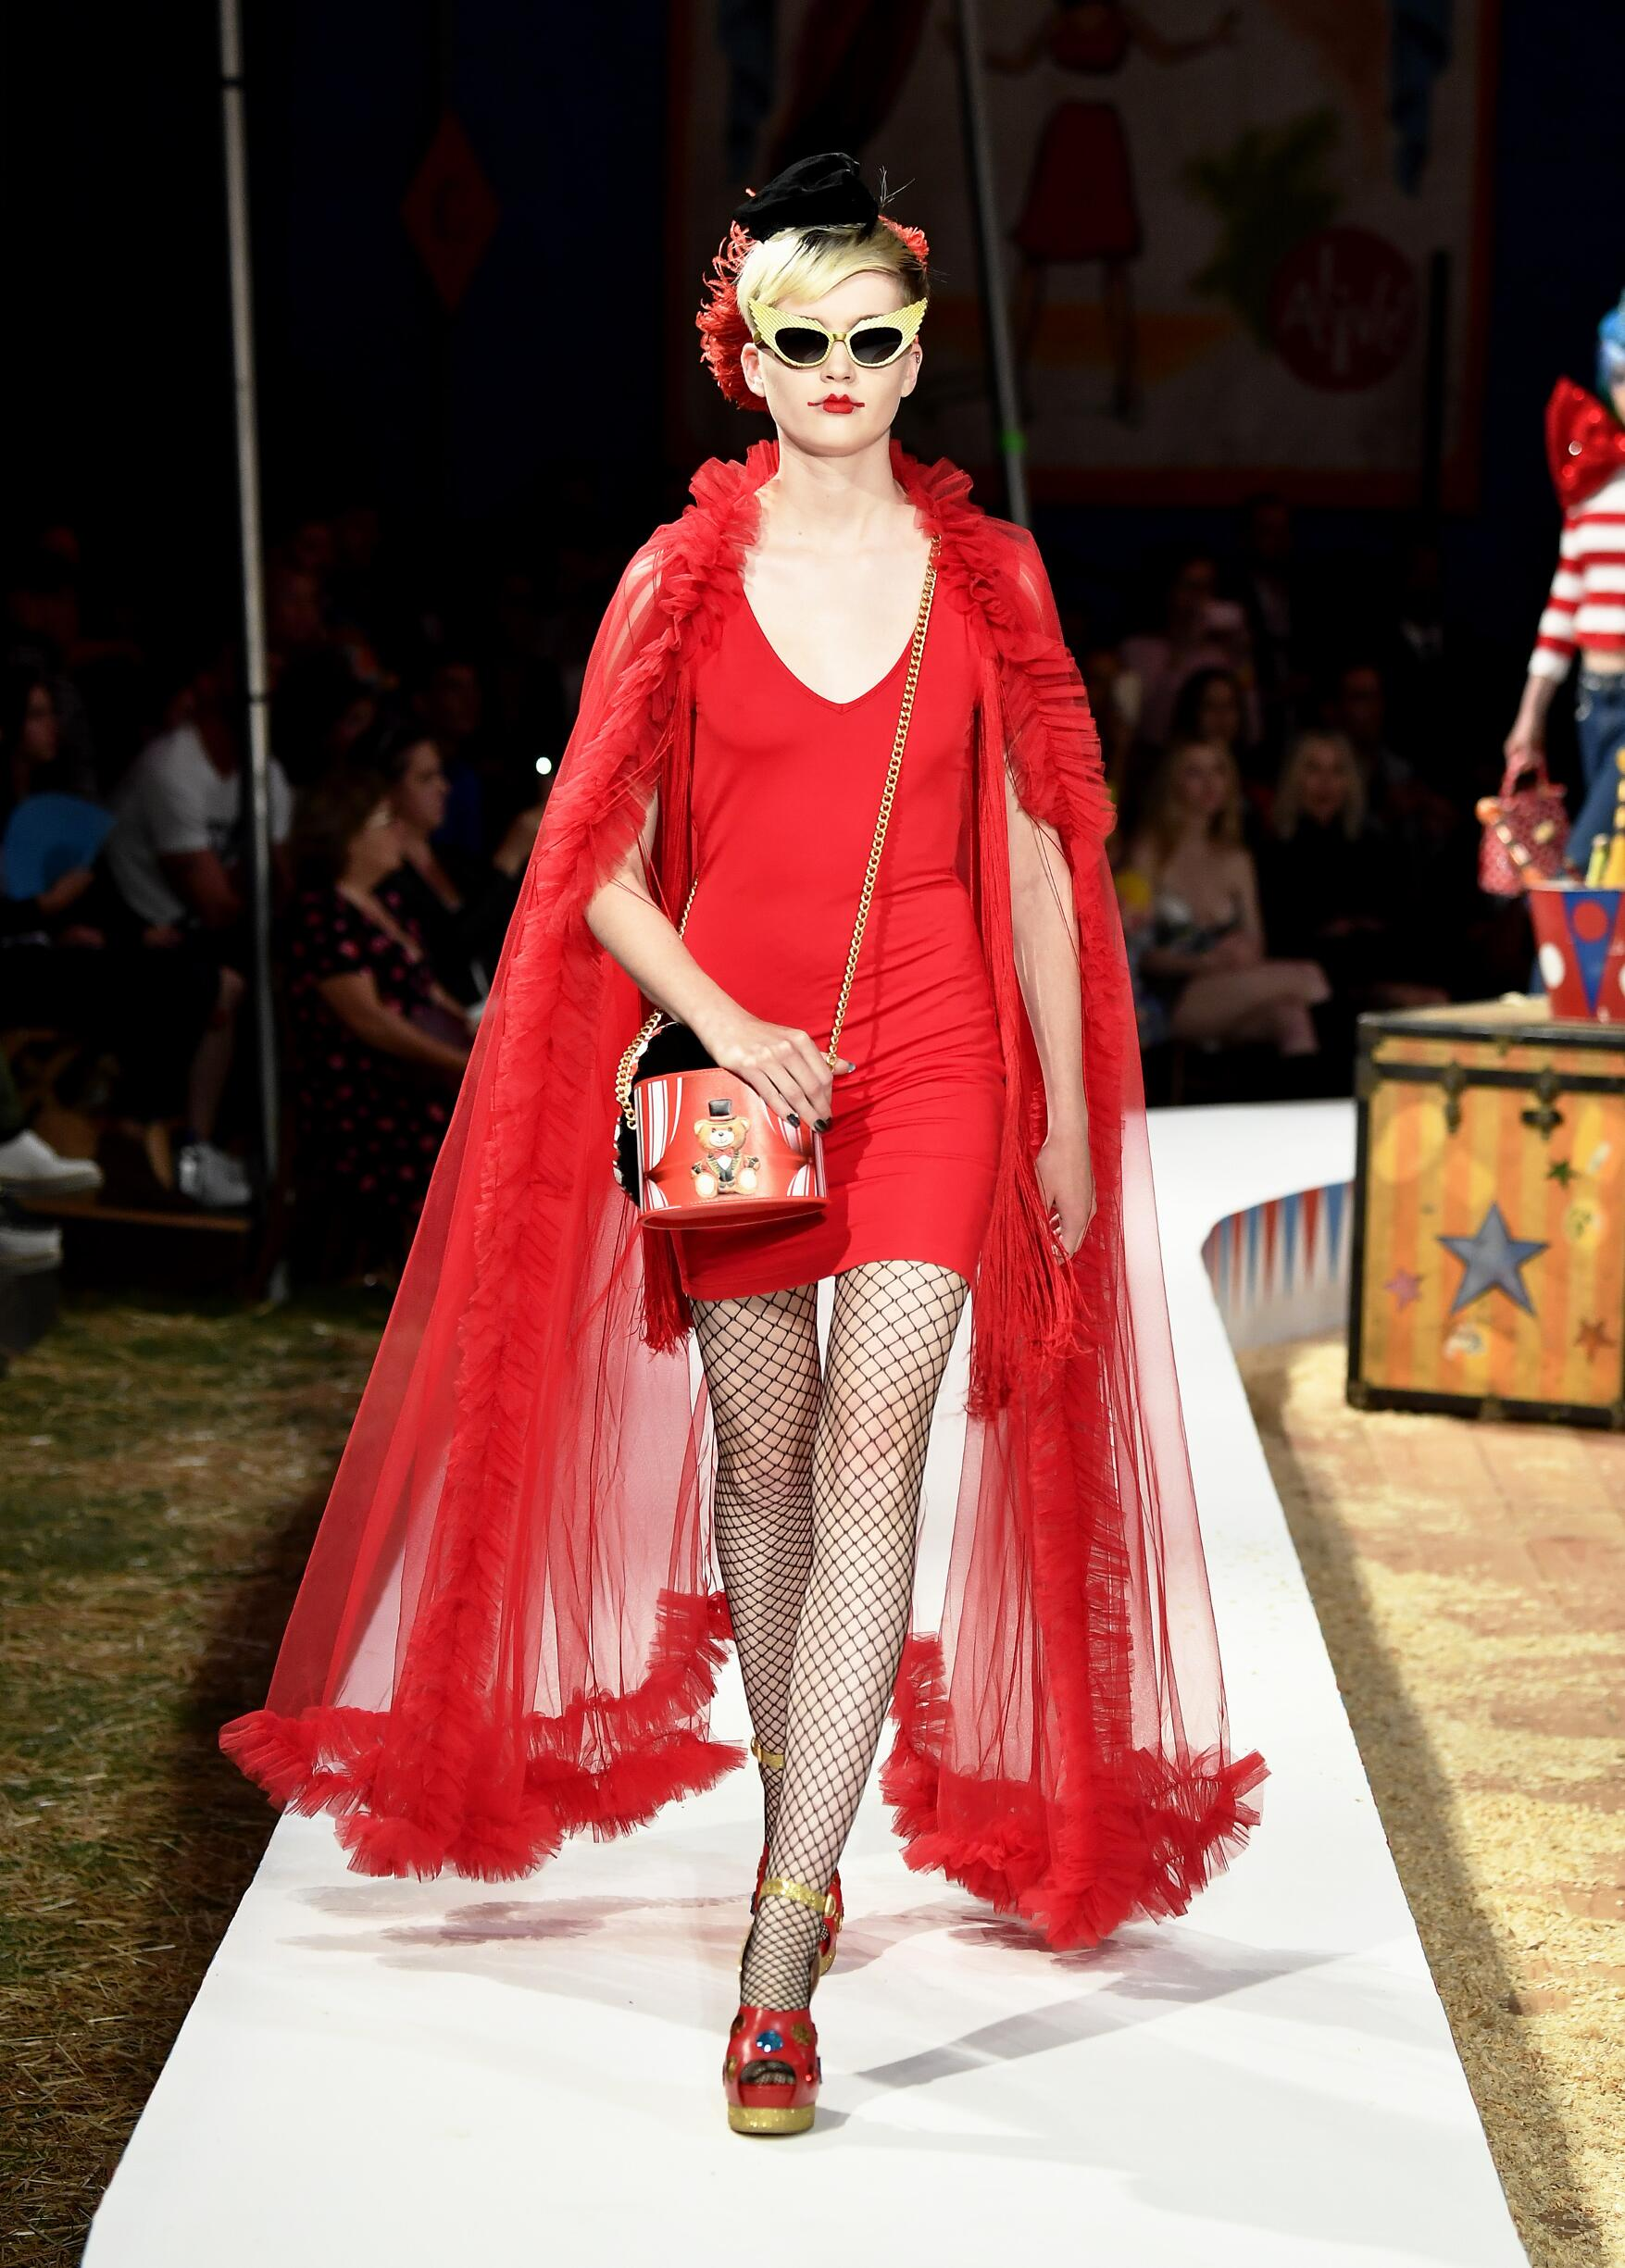 Moschino Spring Summer 2019 Menswear and Women's Resort Collection Look 52 Los Angeles